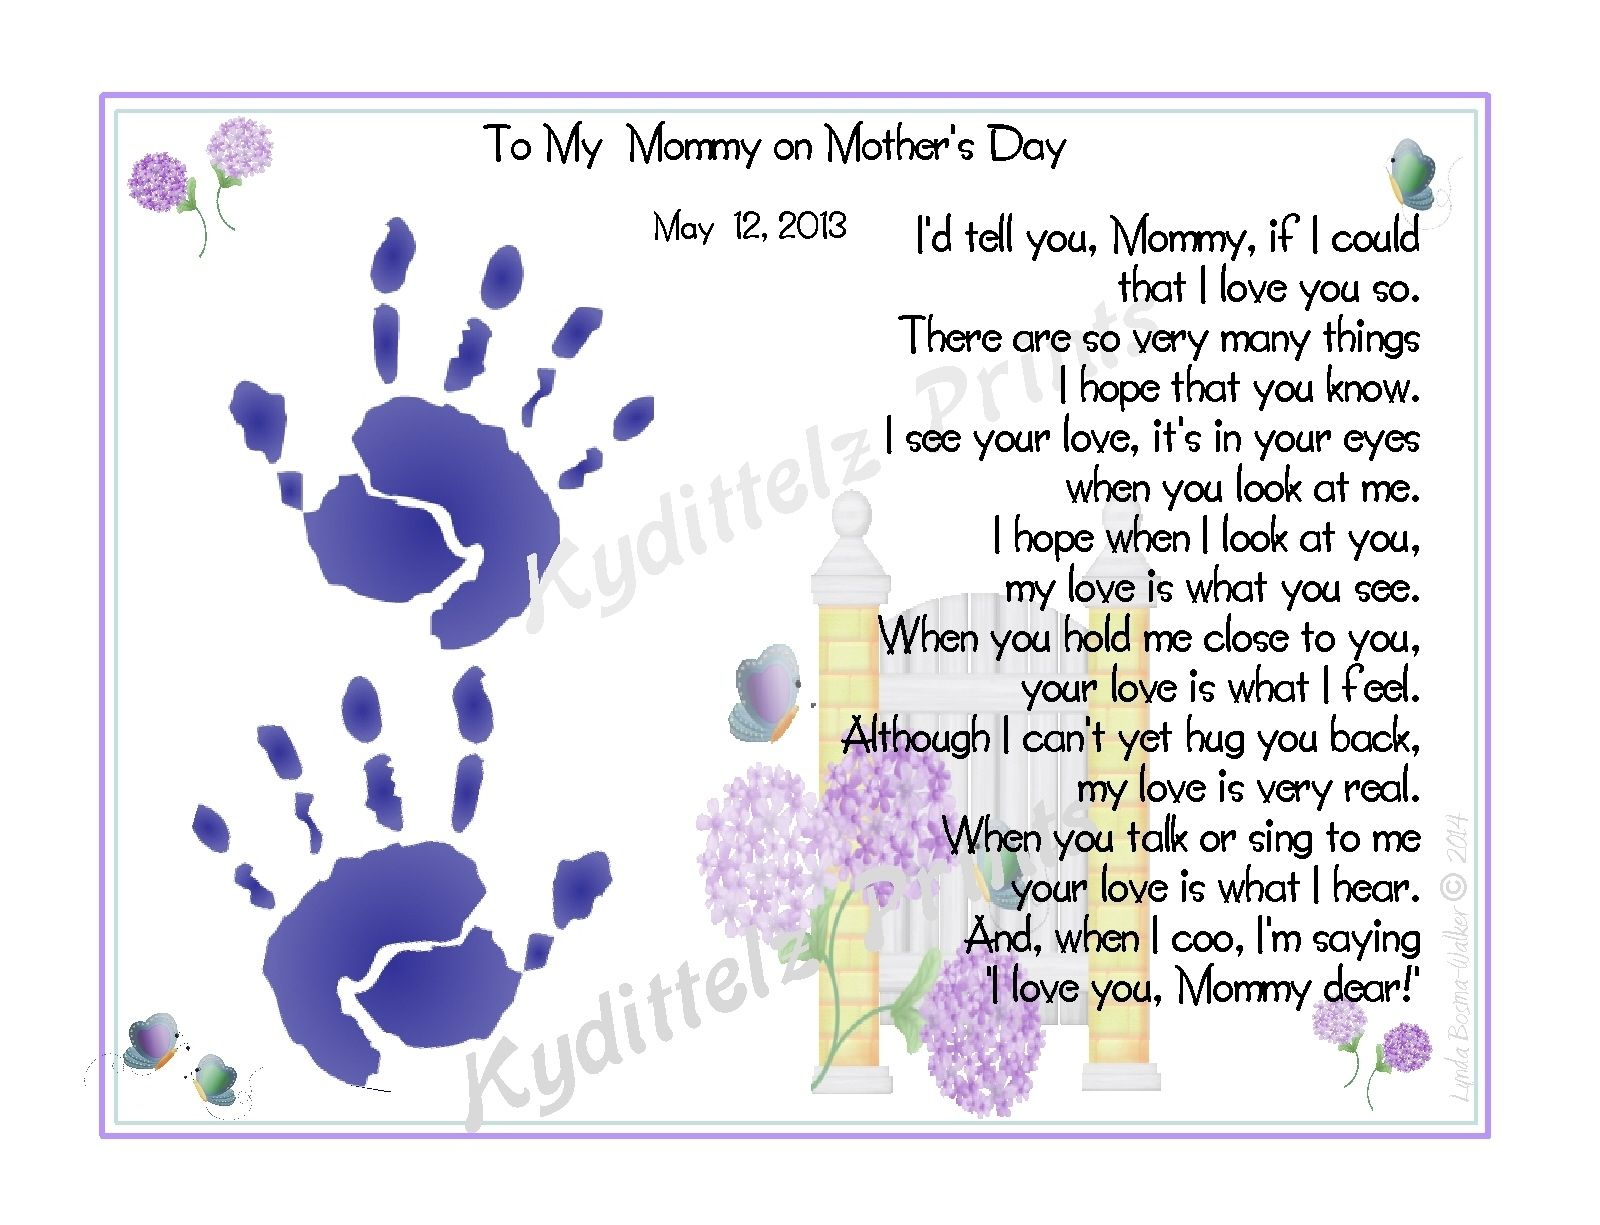 b9a7aae6a Babys Love to Mommy Poem Handprints 1st Mother s Day New Mother ...